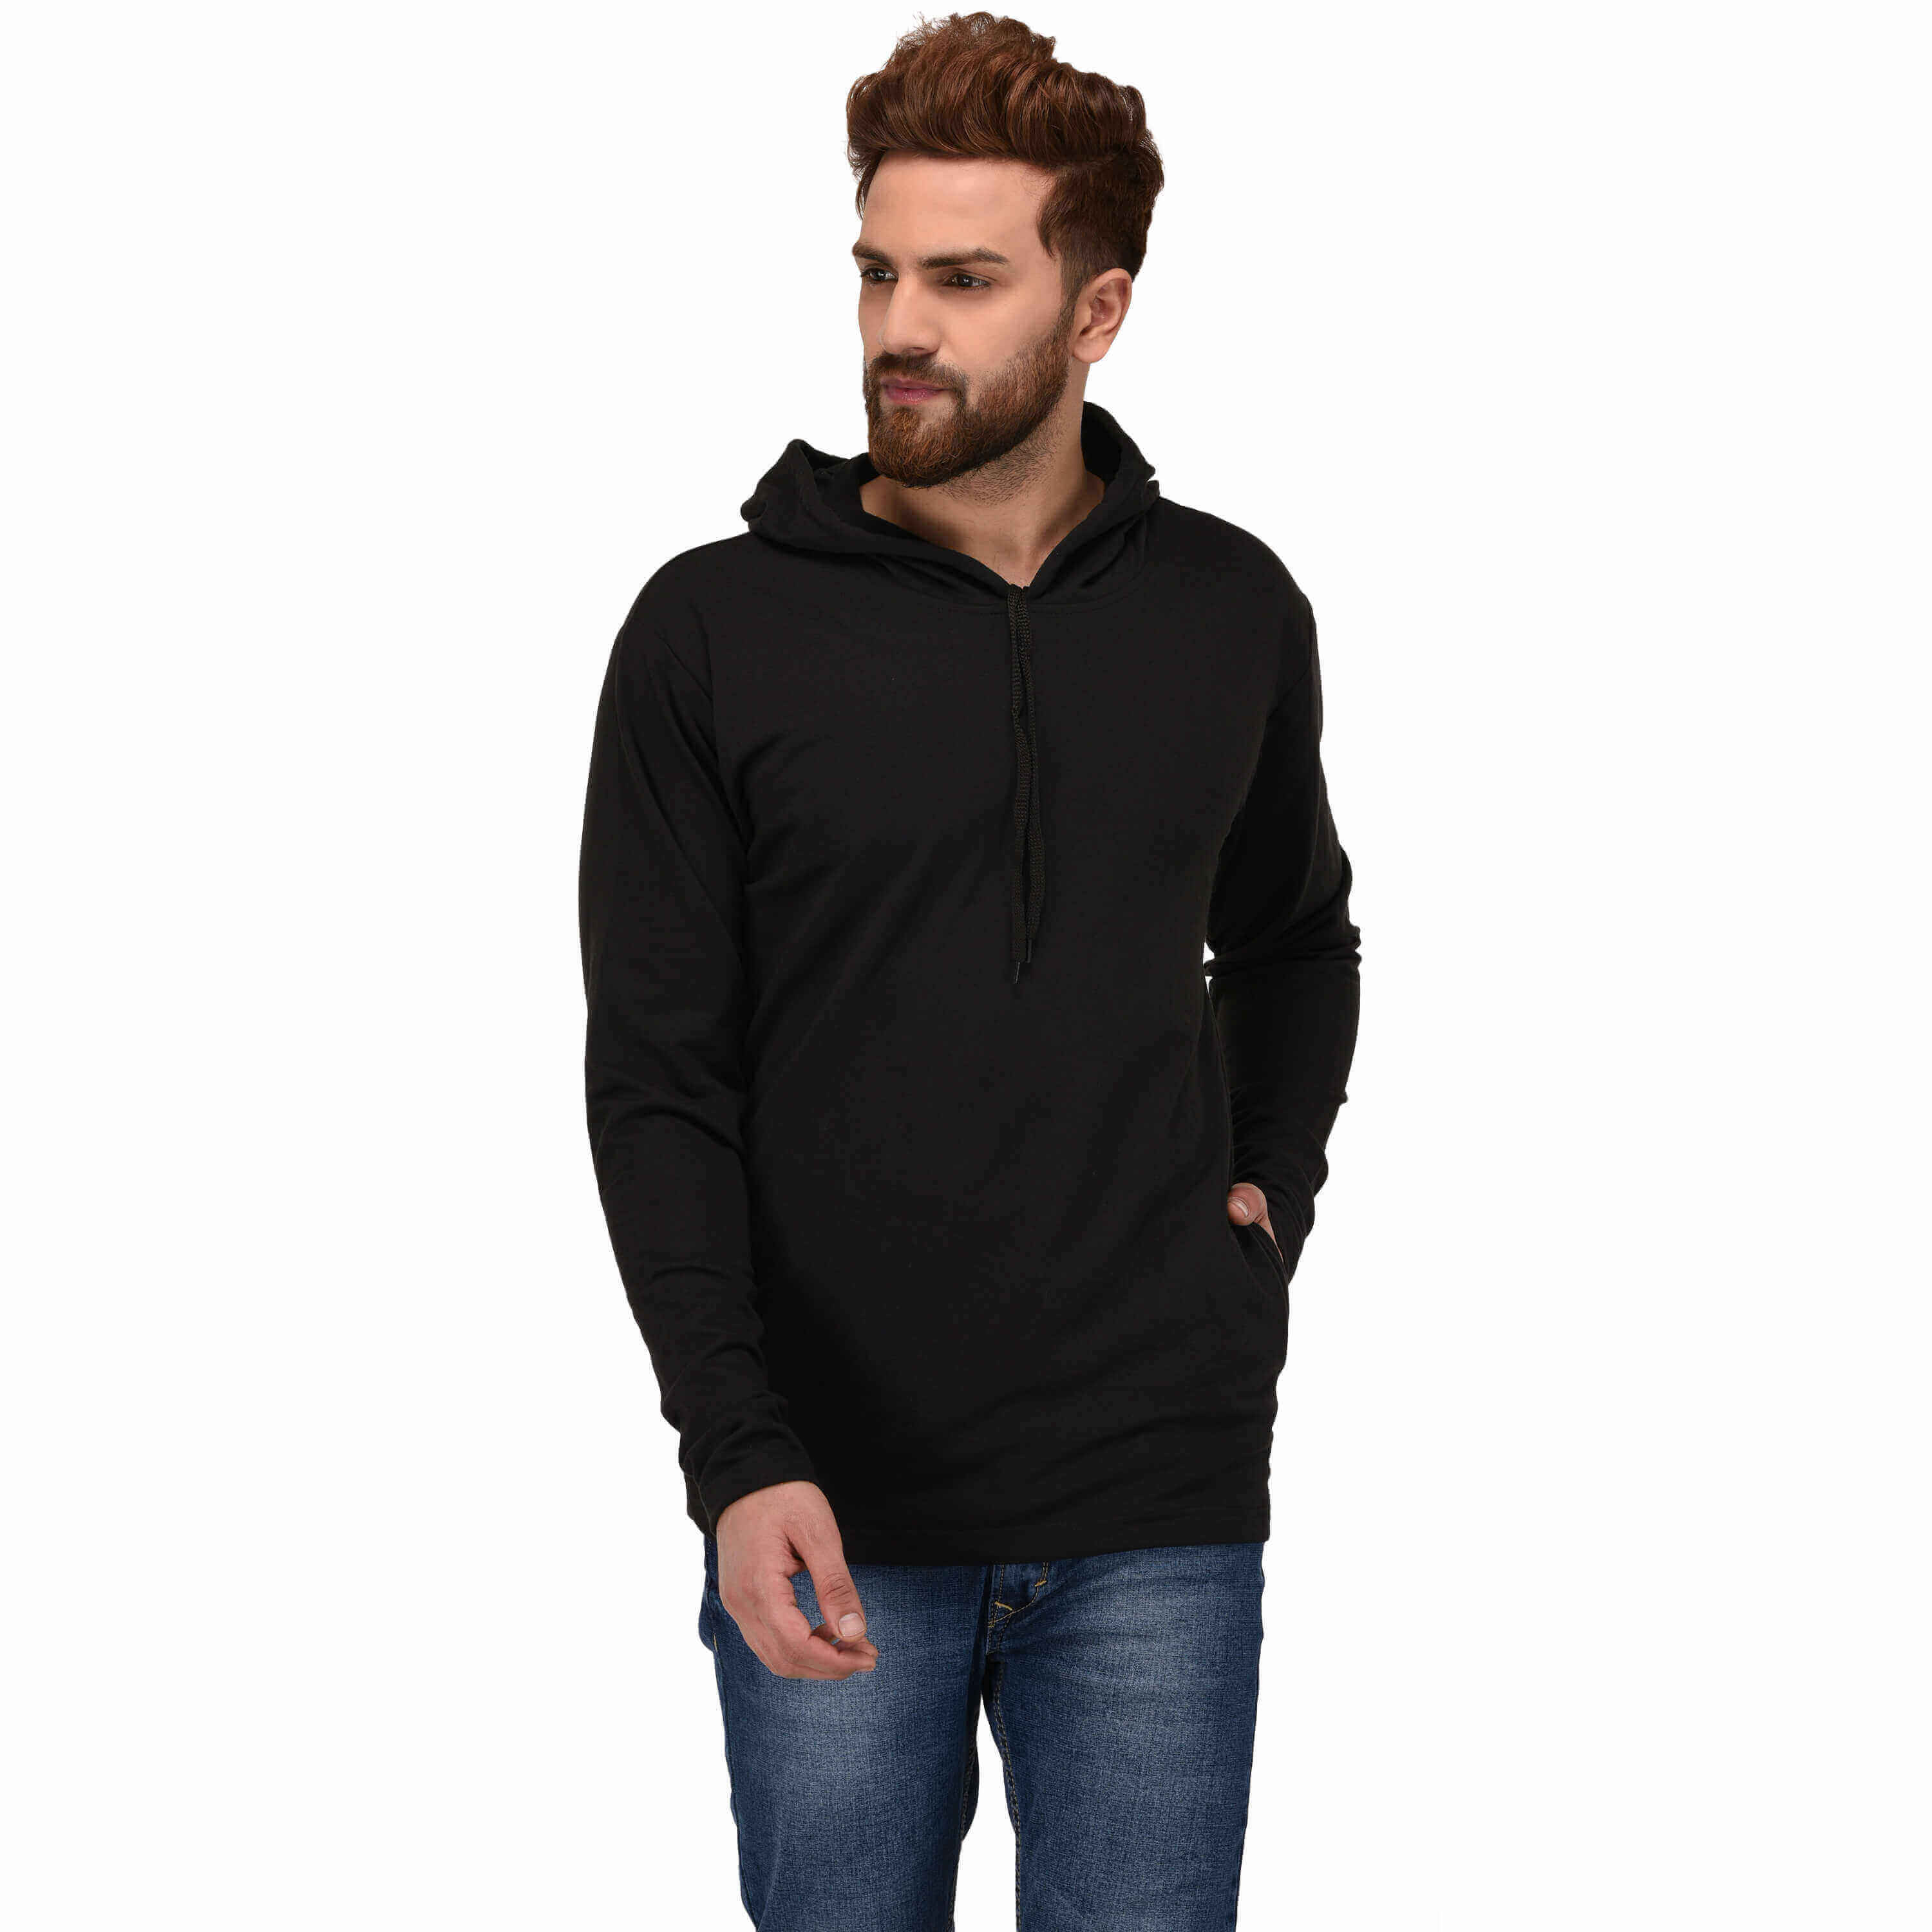 Sports Hoodies Manufacturers in Ajmer